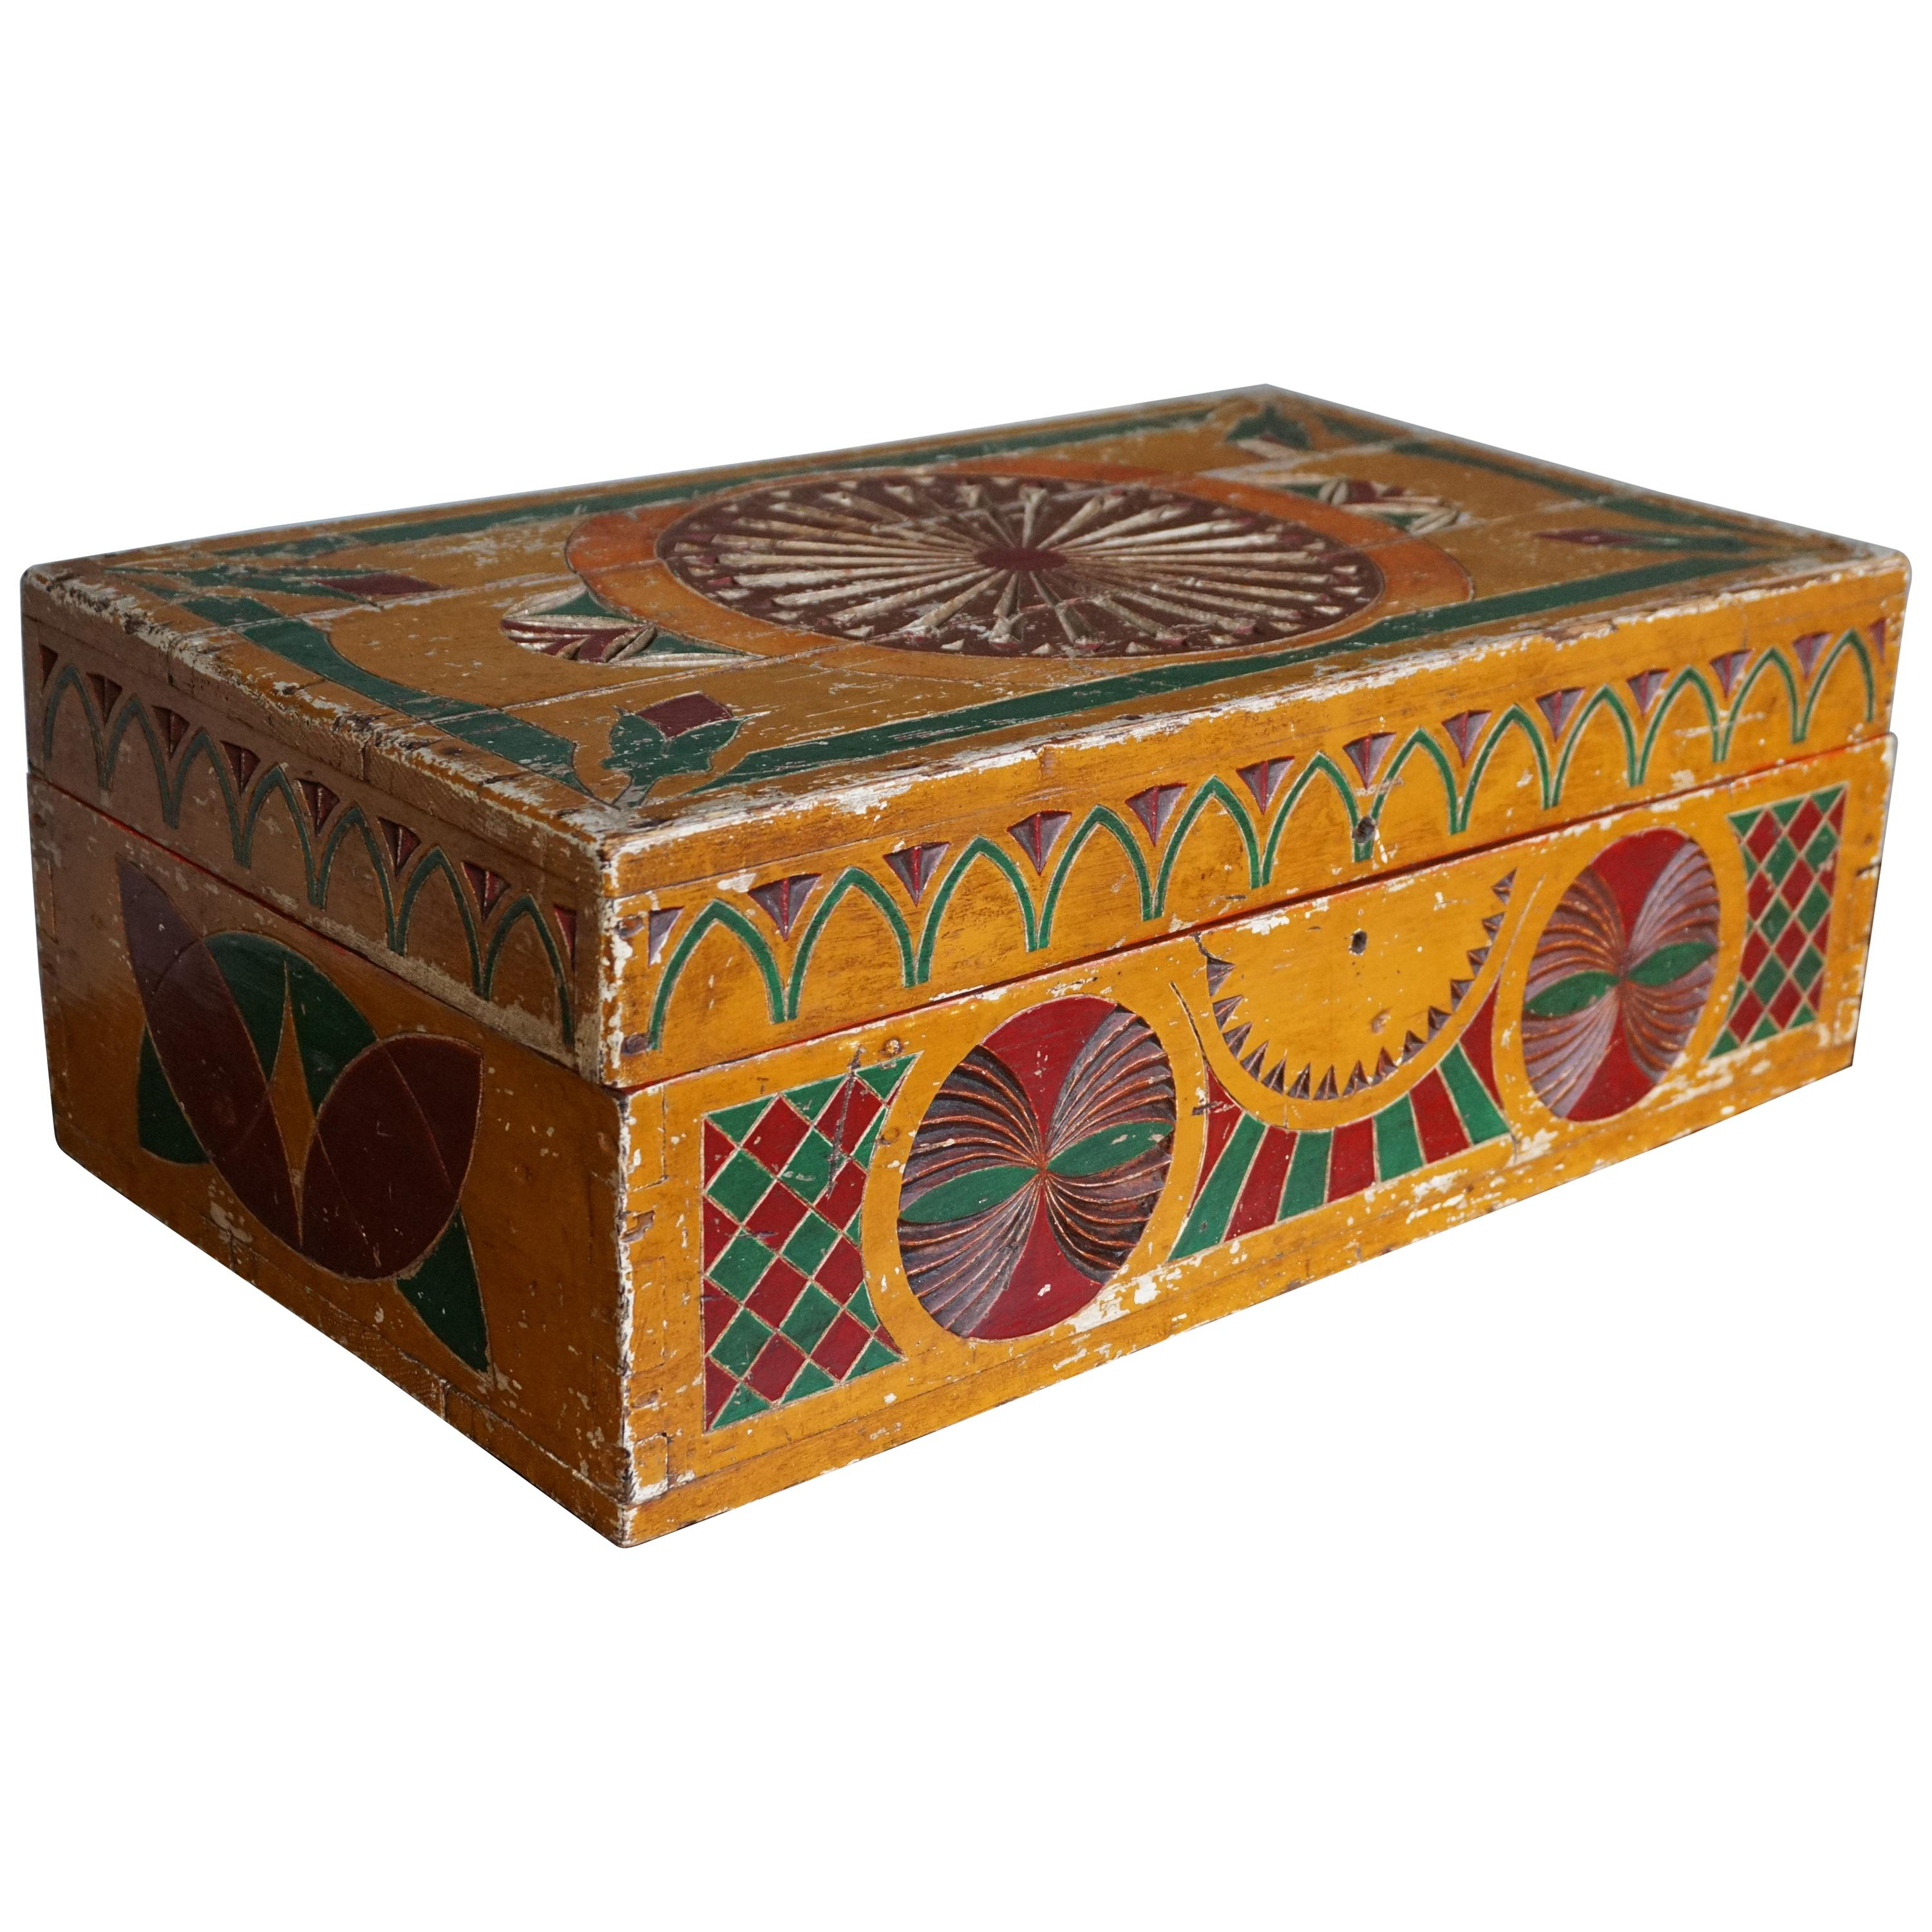 Hand-Crafted, Hand Carved & Hand Painted Arts and Crafts Box w. Stylized Flowers